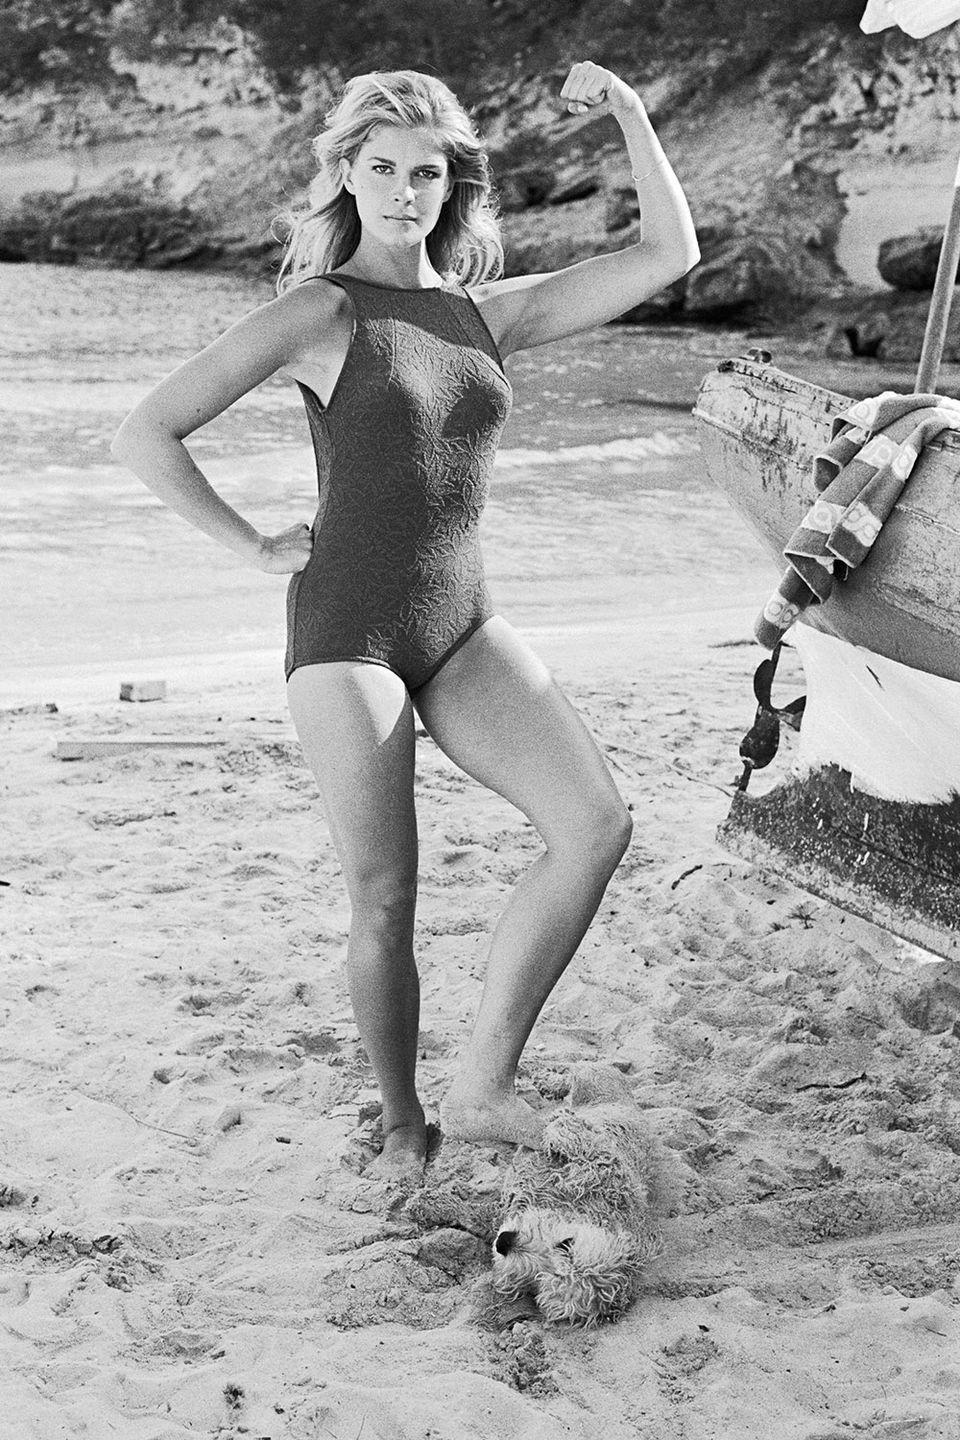 <p>Candice Bergen flexes while resting her foot on a dog laying in the sand in 1968.</p>